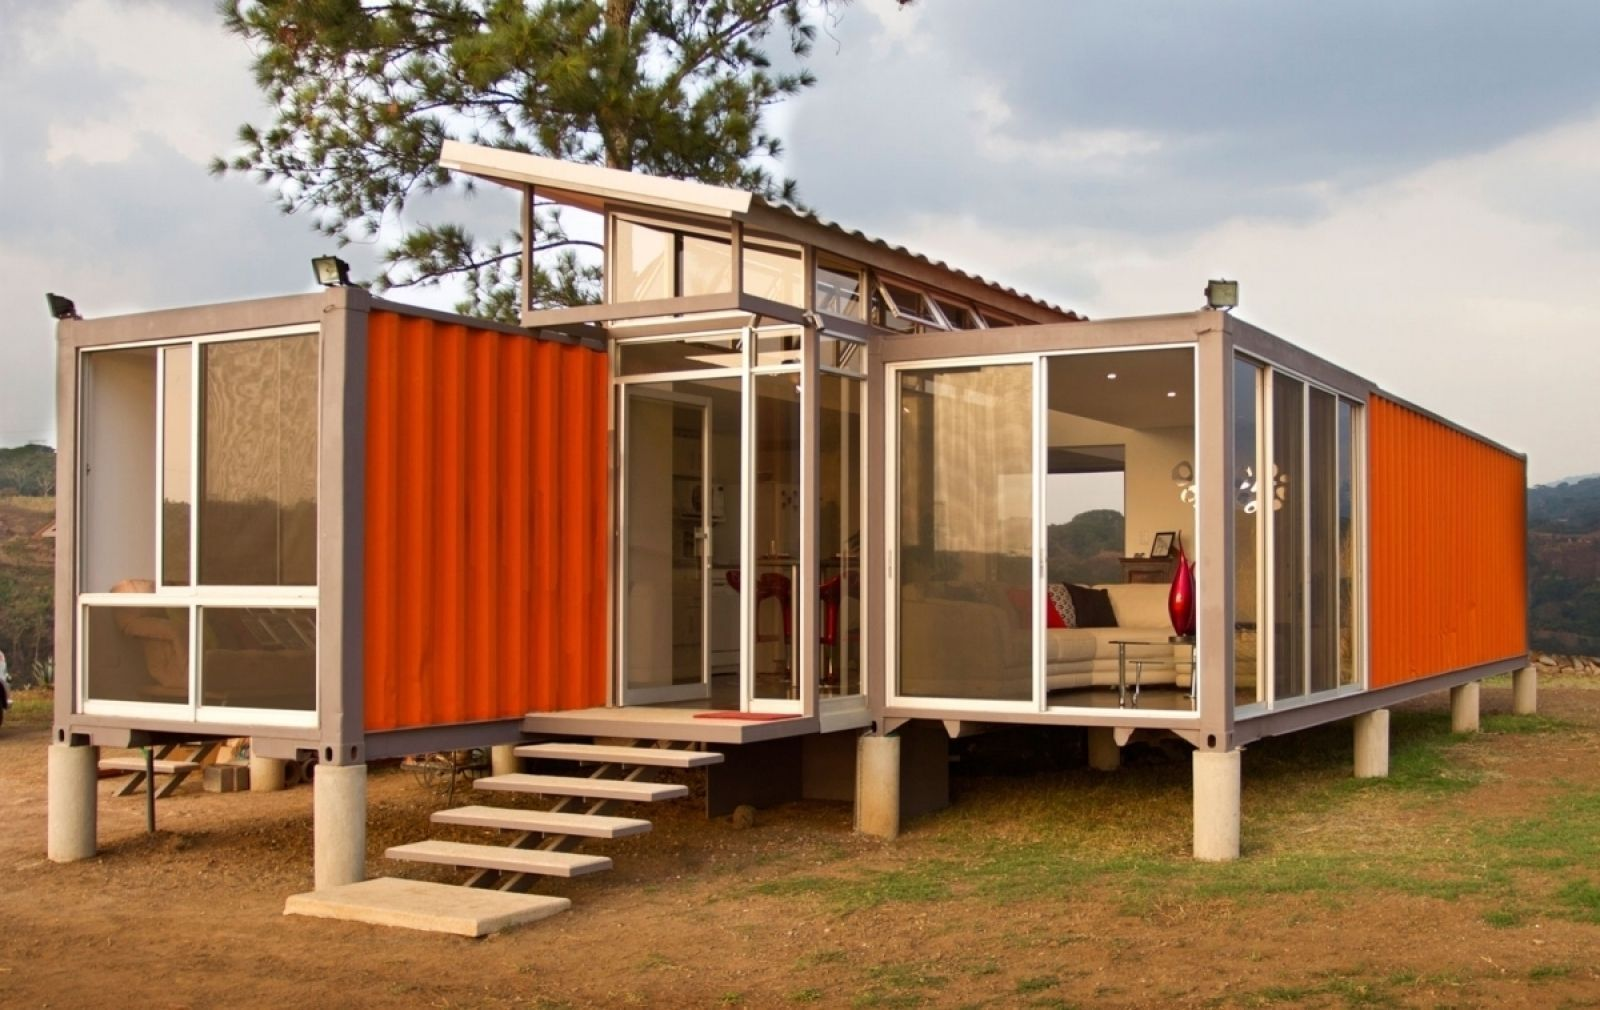 Prefab shipping container homes for sale unique home ideas conex box houses prefab shipping containers prefab shipping container homes for sale